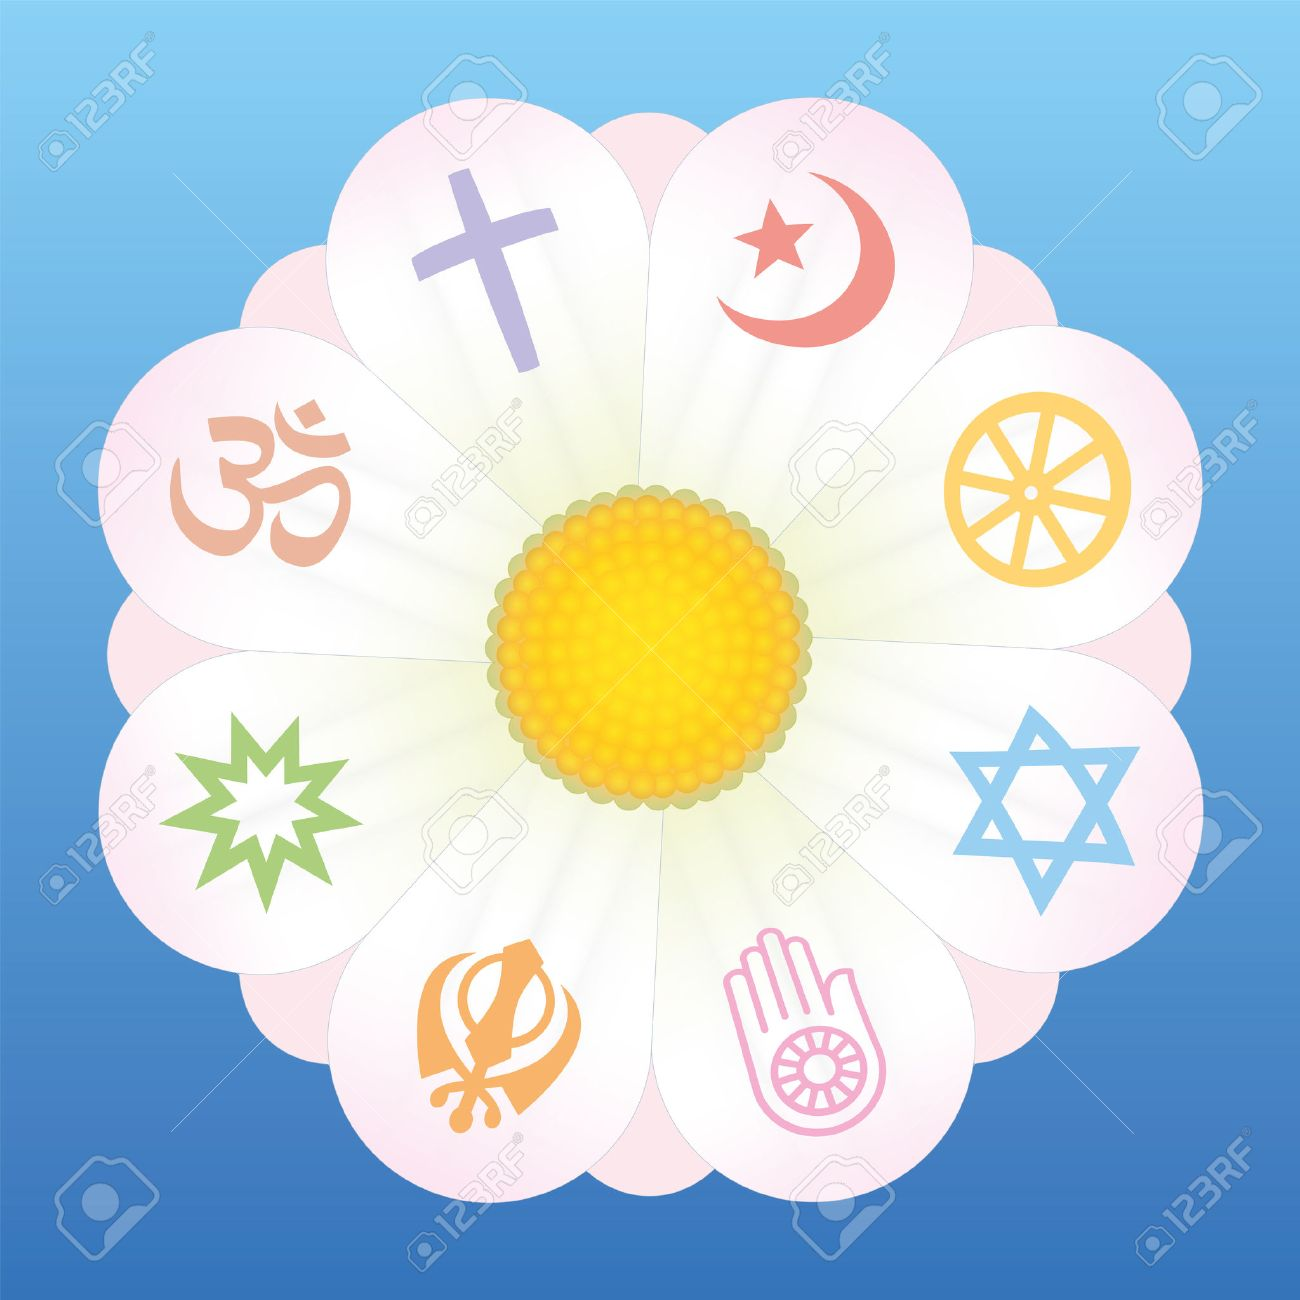 World Religion Symbols On Petals Of A Flower As A Symbol For